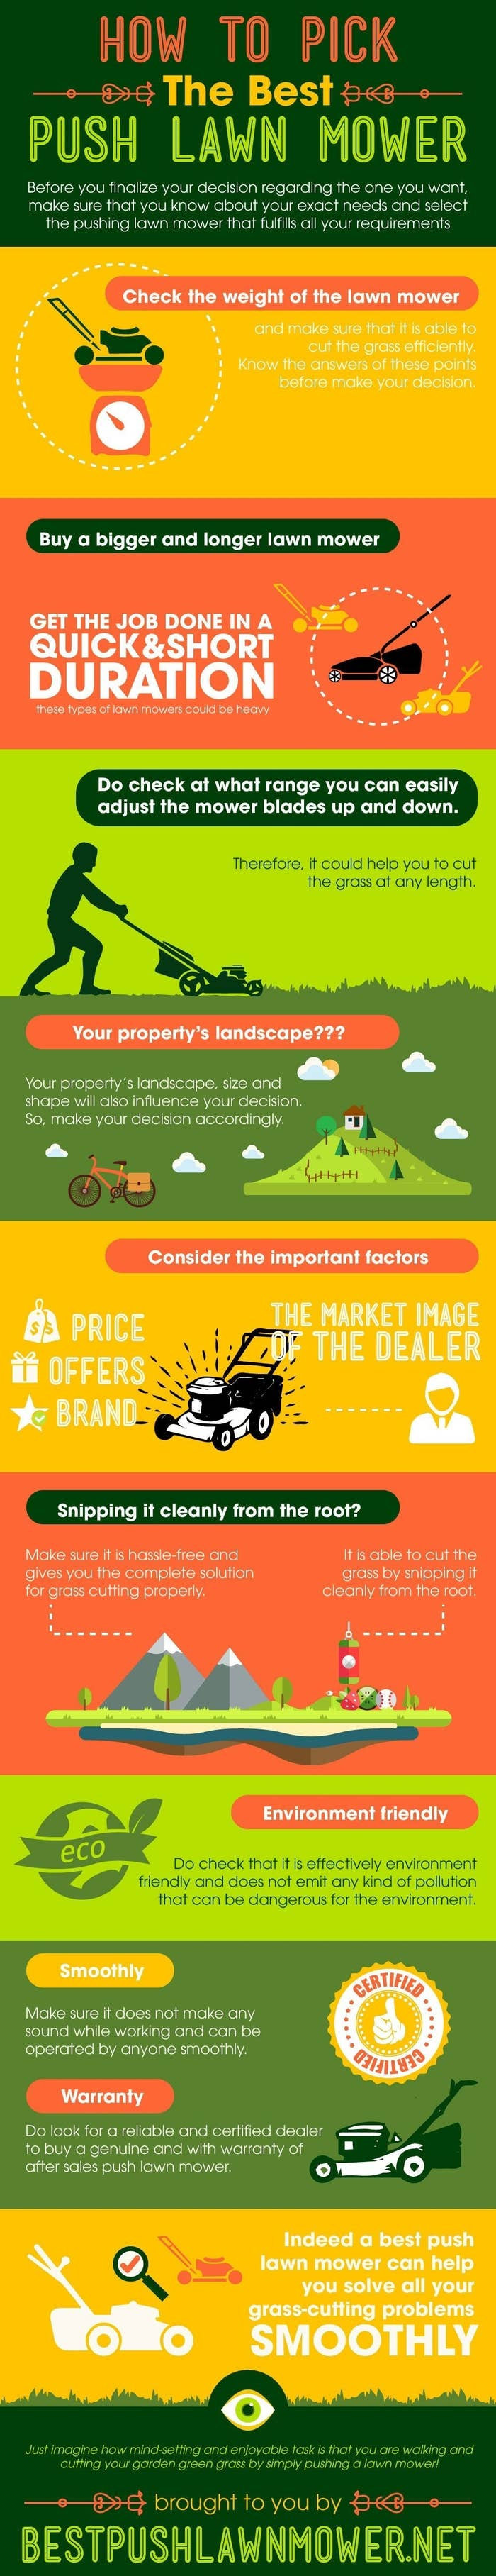 Picking the Best push Lawn Mower is a vital part of gardening, no matter what gardening tools you use you should always go wisely. This info graphic will help you buy the best push lawn mower.